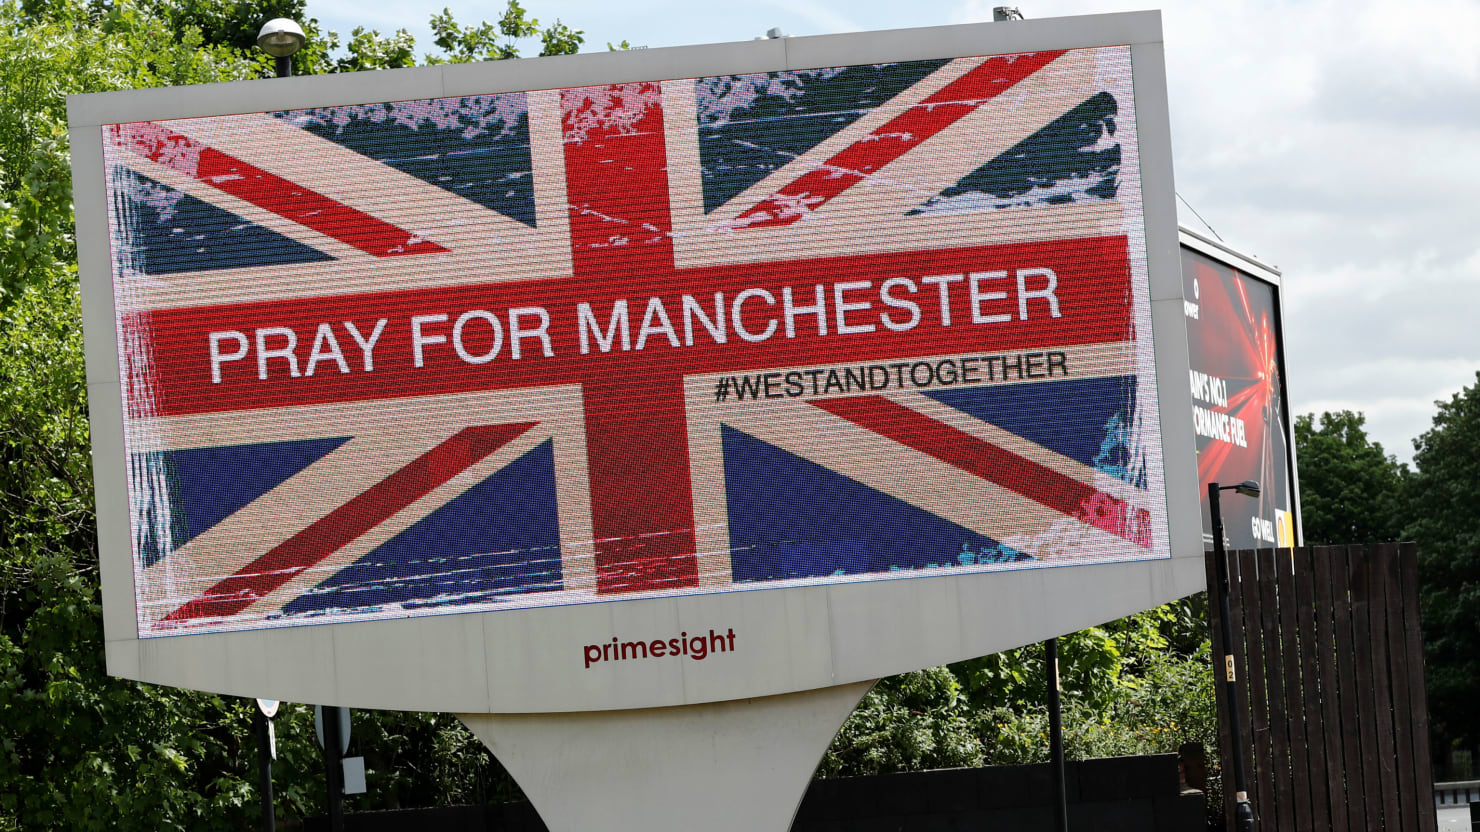 Isis Supporters Cheer Manchester Bombing Urge More Such